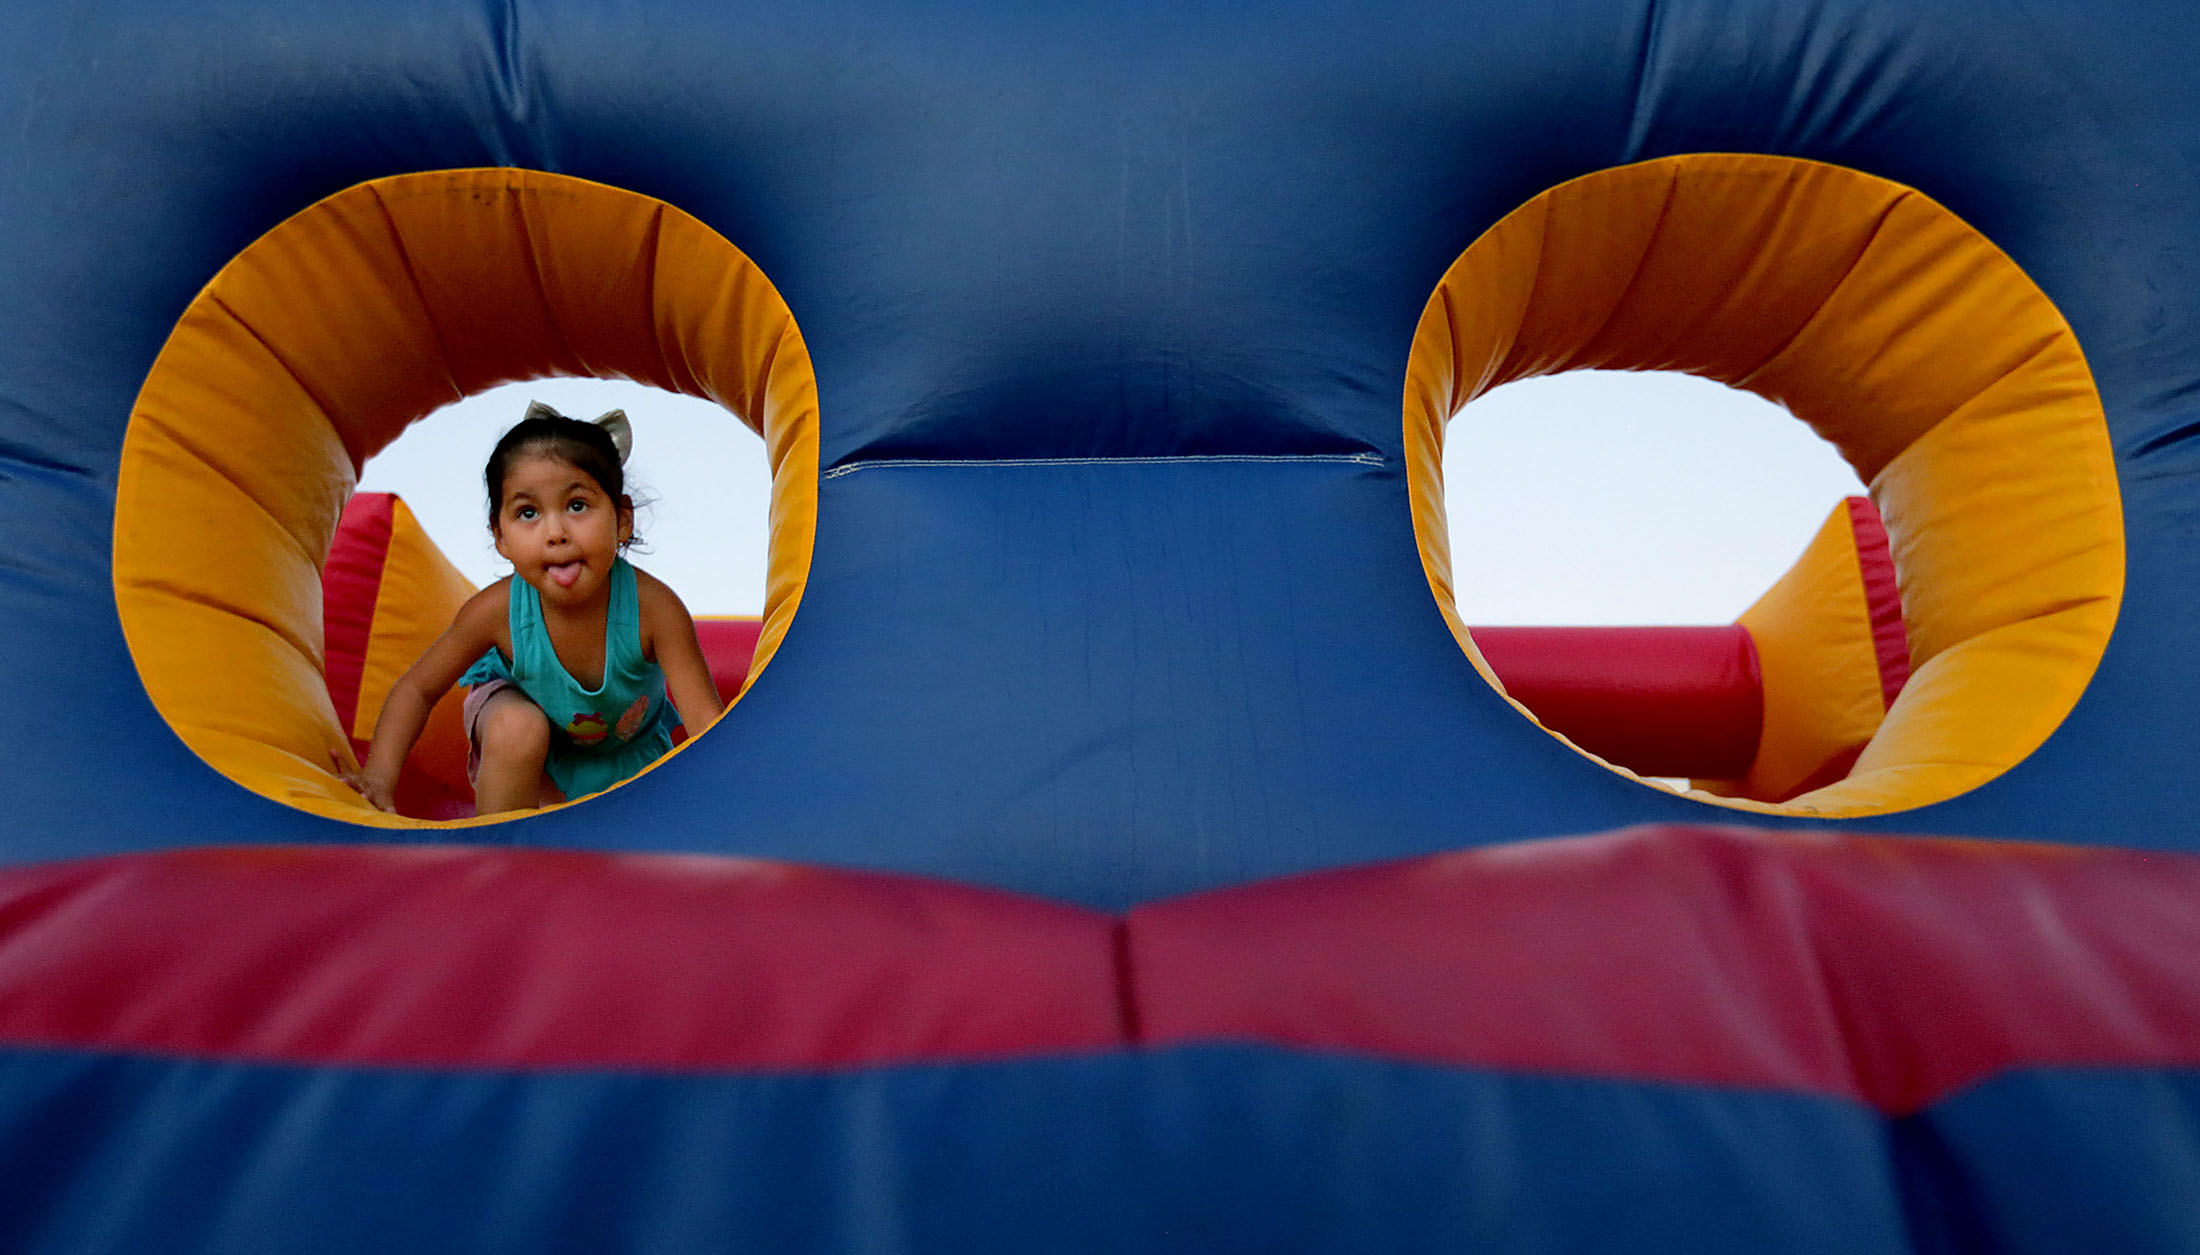 Kids play in the fun zone during Moreno Valley summer concert and movie series at the Conference and Recreation Center in Moreno Valley on Friday, August 3, 2018.